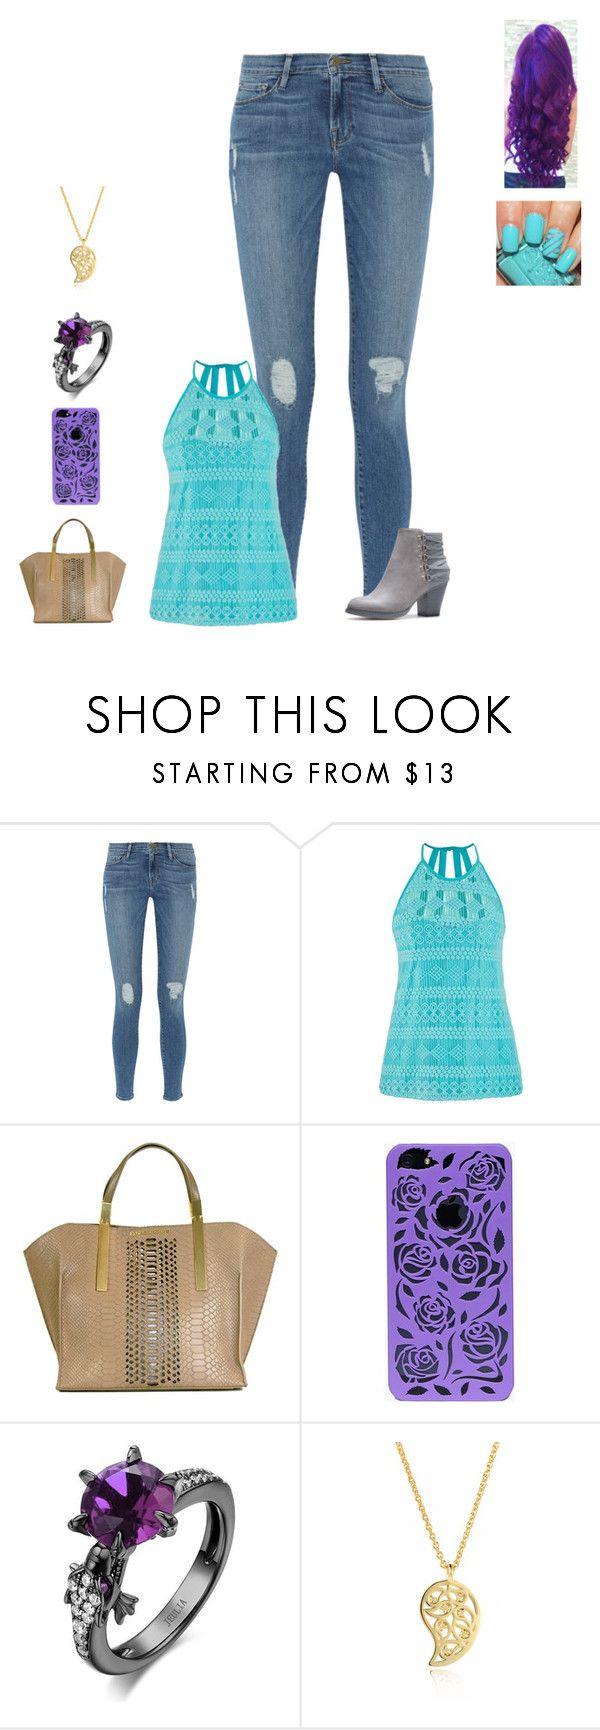 """""""Sans titre #1439"""" by harrystylesandliampayne ❤ liked on Polyvore featuring Frame, maurices, Z Spoke and Sonal Bhaskaran"""